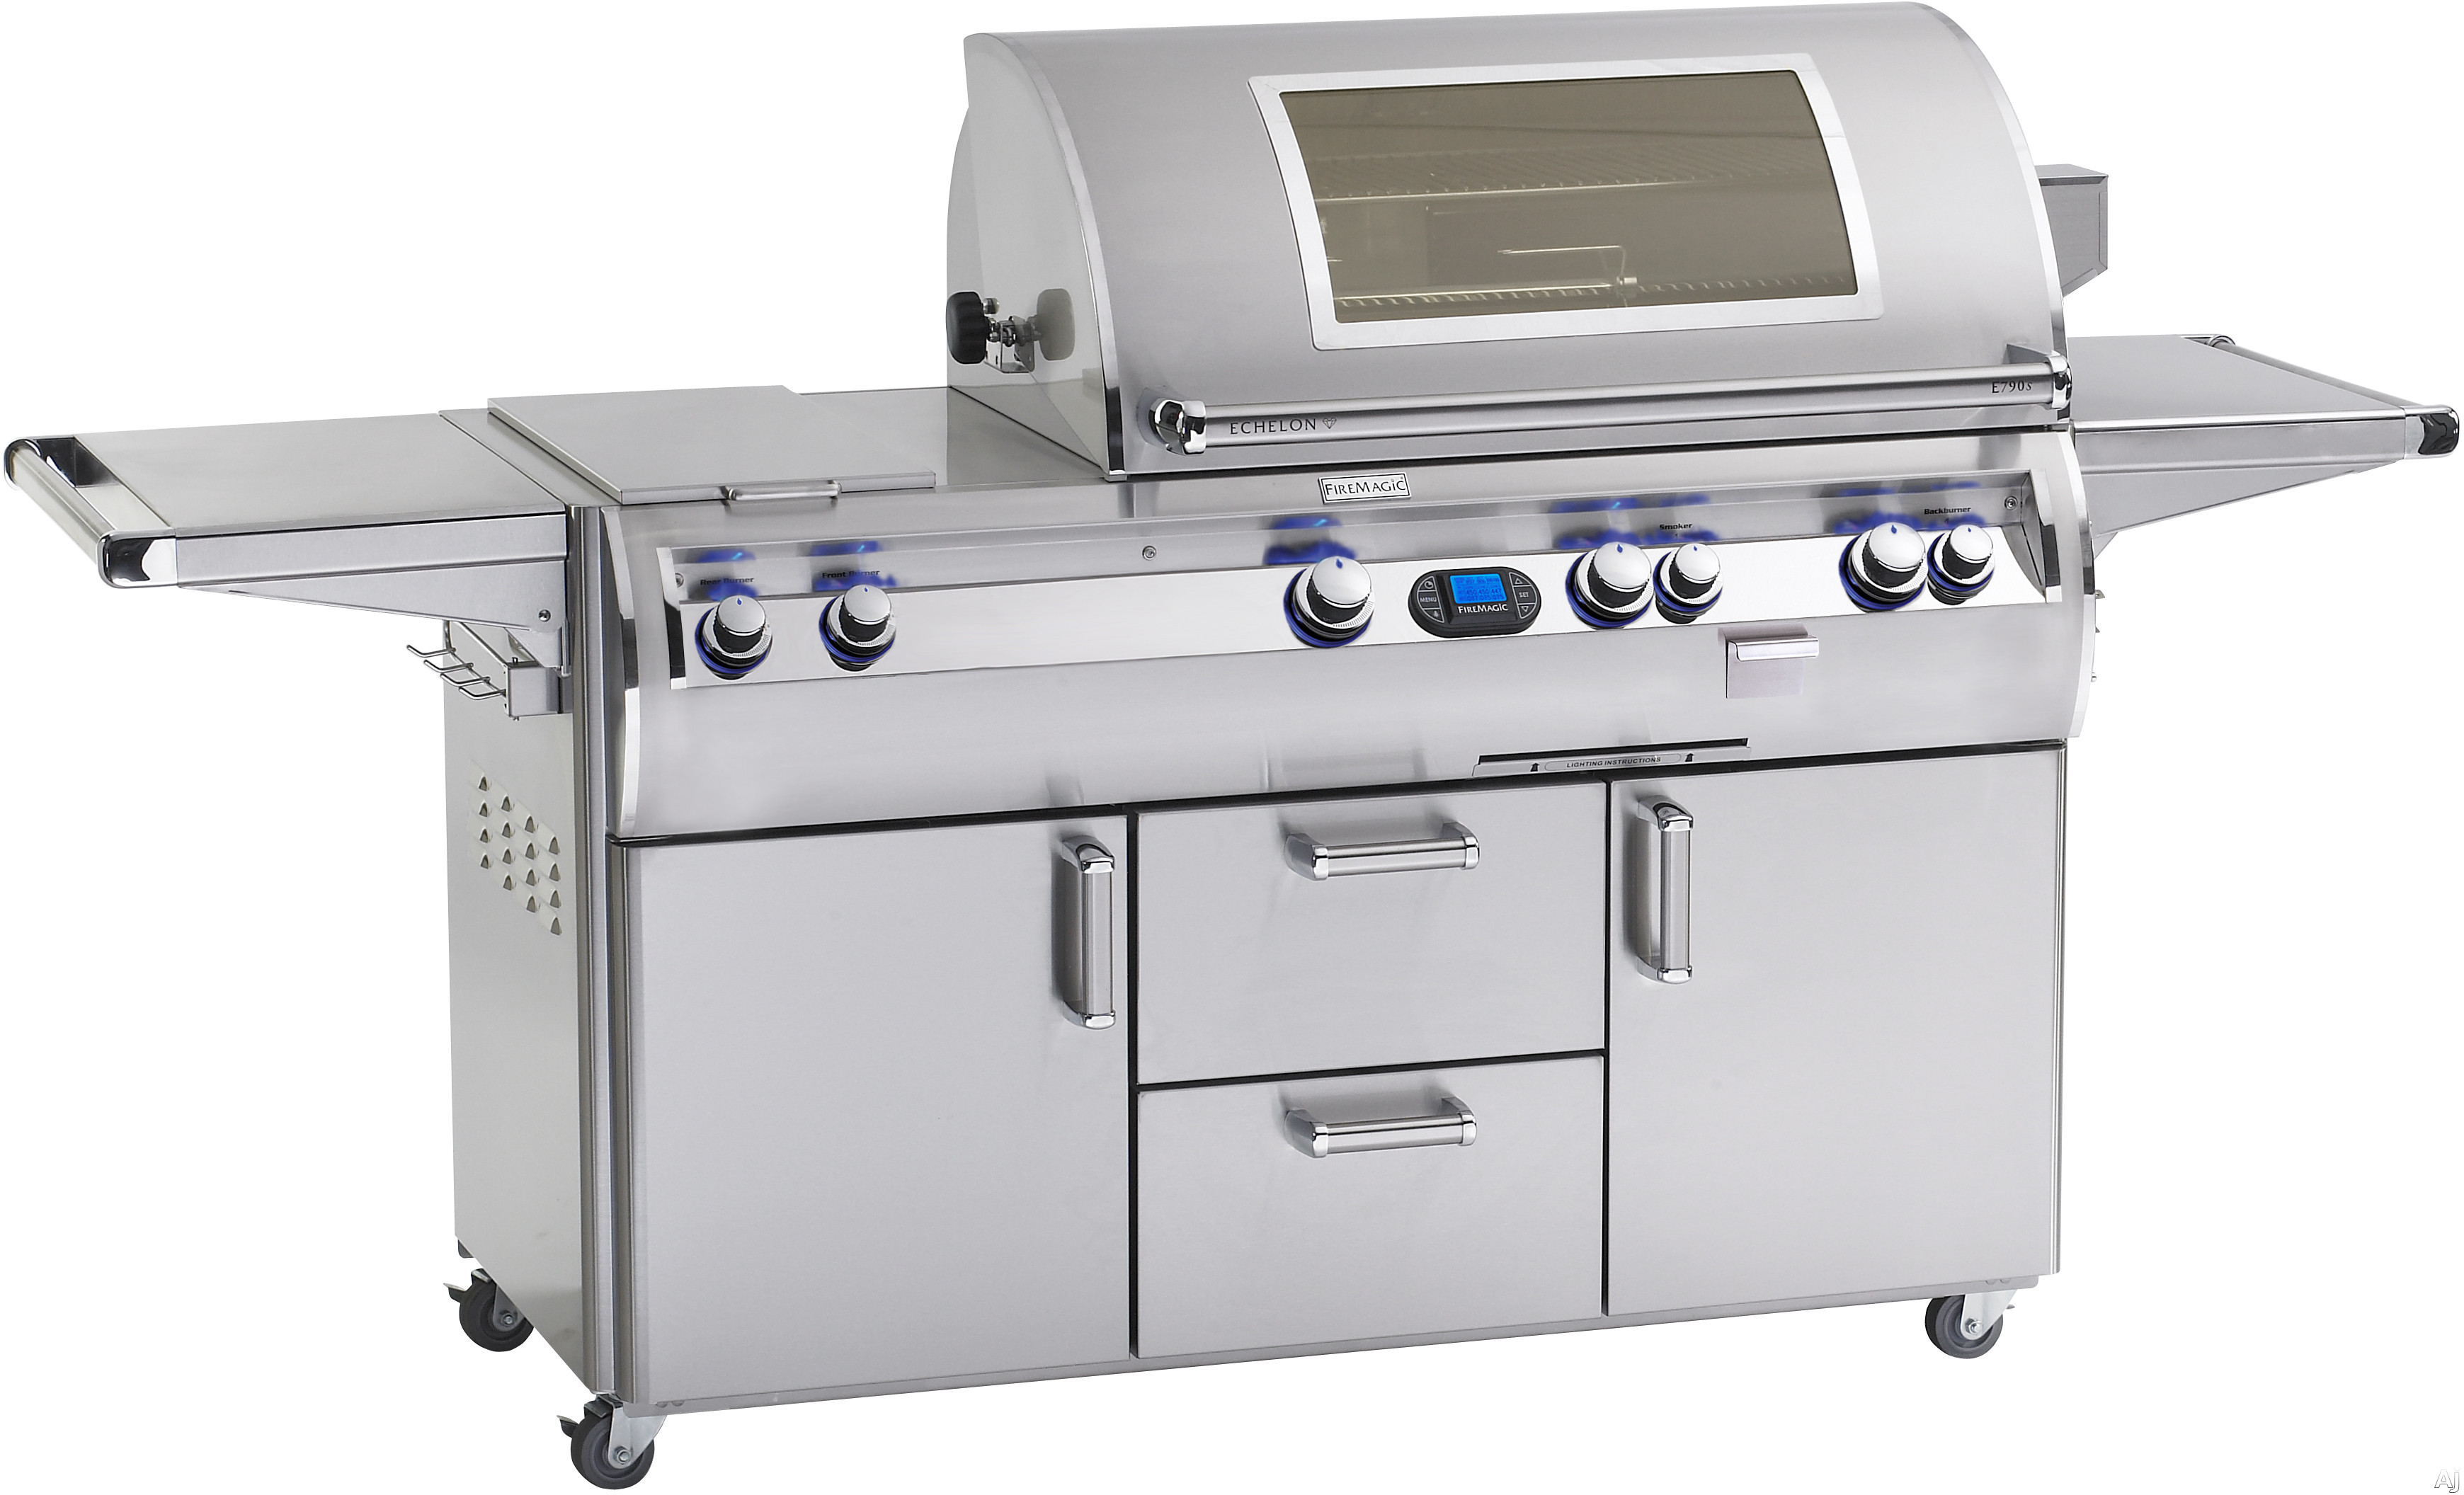 Fire Magic Echelon Collection E790S4 92 Inch Freestanding Gas Grill with Rotisserie Kit, Analog Temperature, Gague Smoker, 792 sq. in. Cooking Surface, 99,000 BTU Stainless Steel Primary Burners, 13,000 Secondary Burners, 15,000 BTU Single Side Burner an